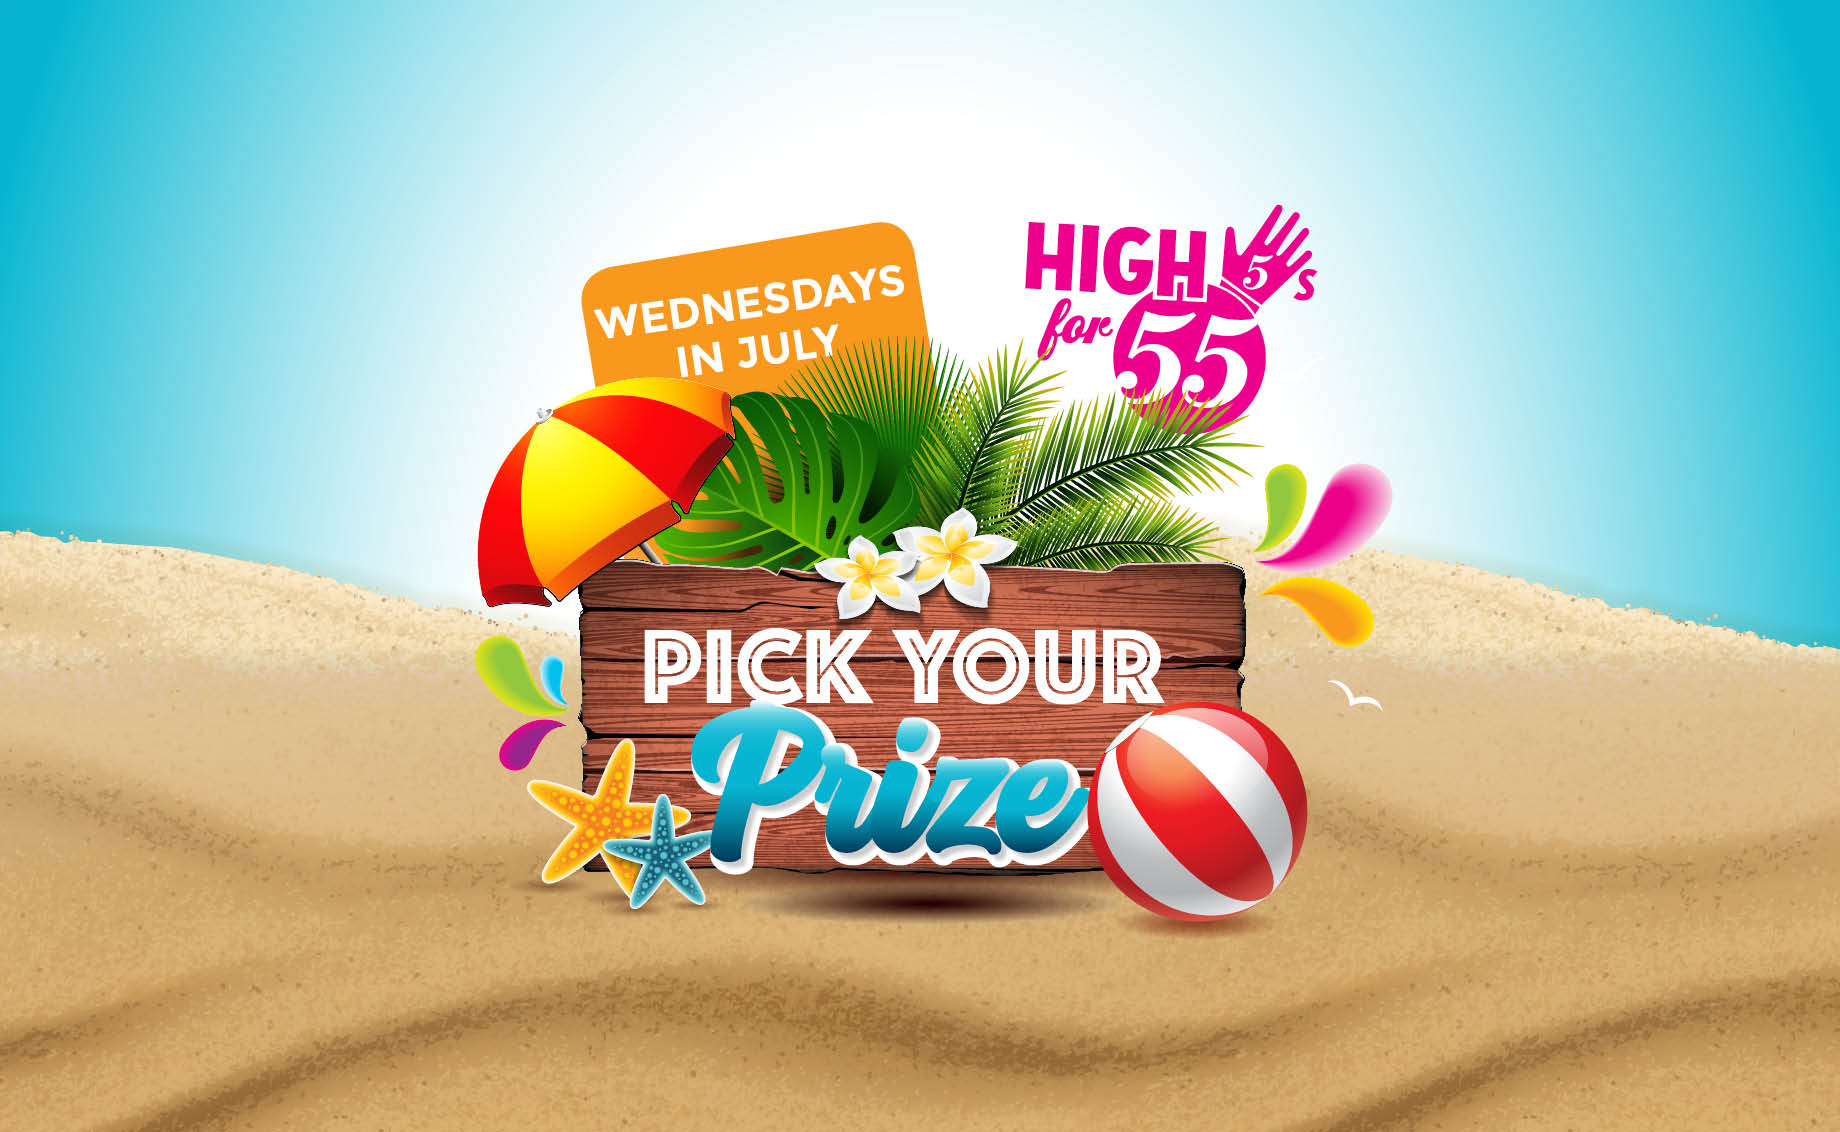 High 5's for 55 – Pick Your Prize